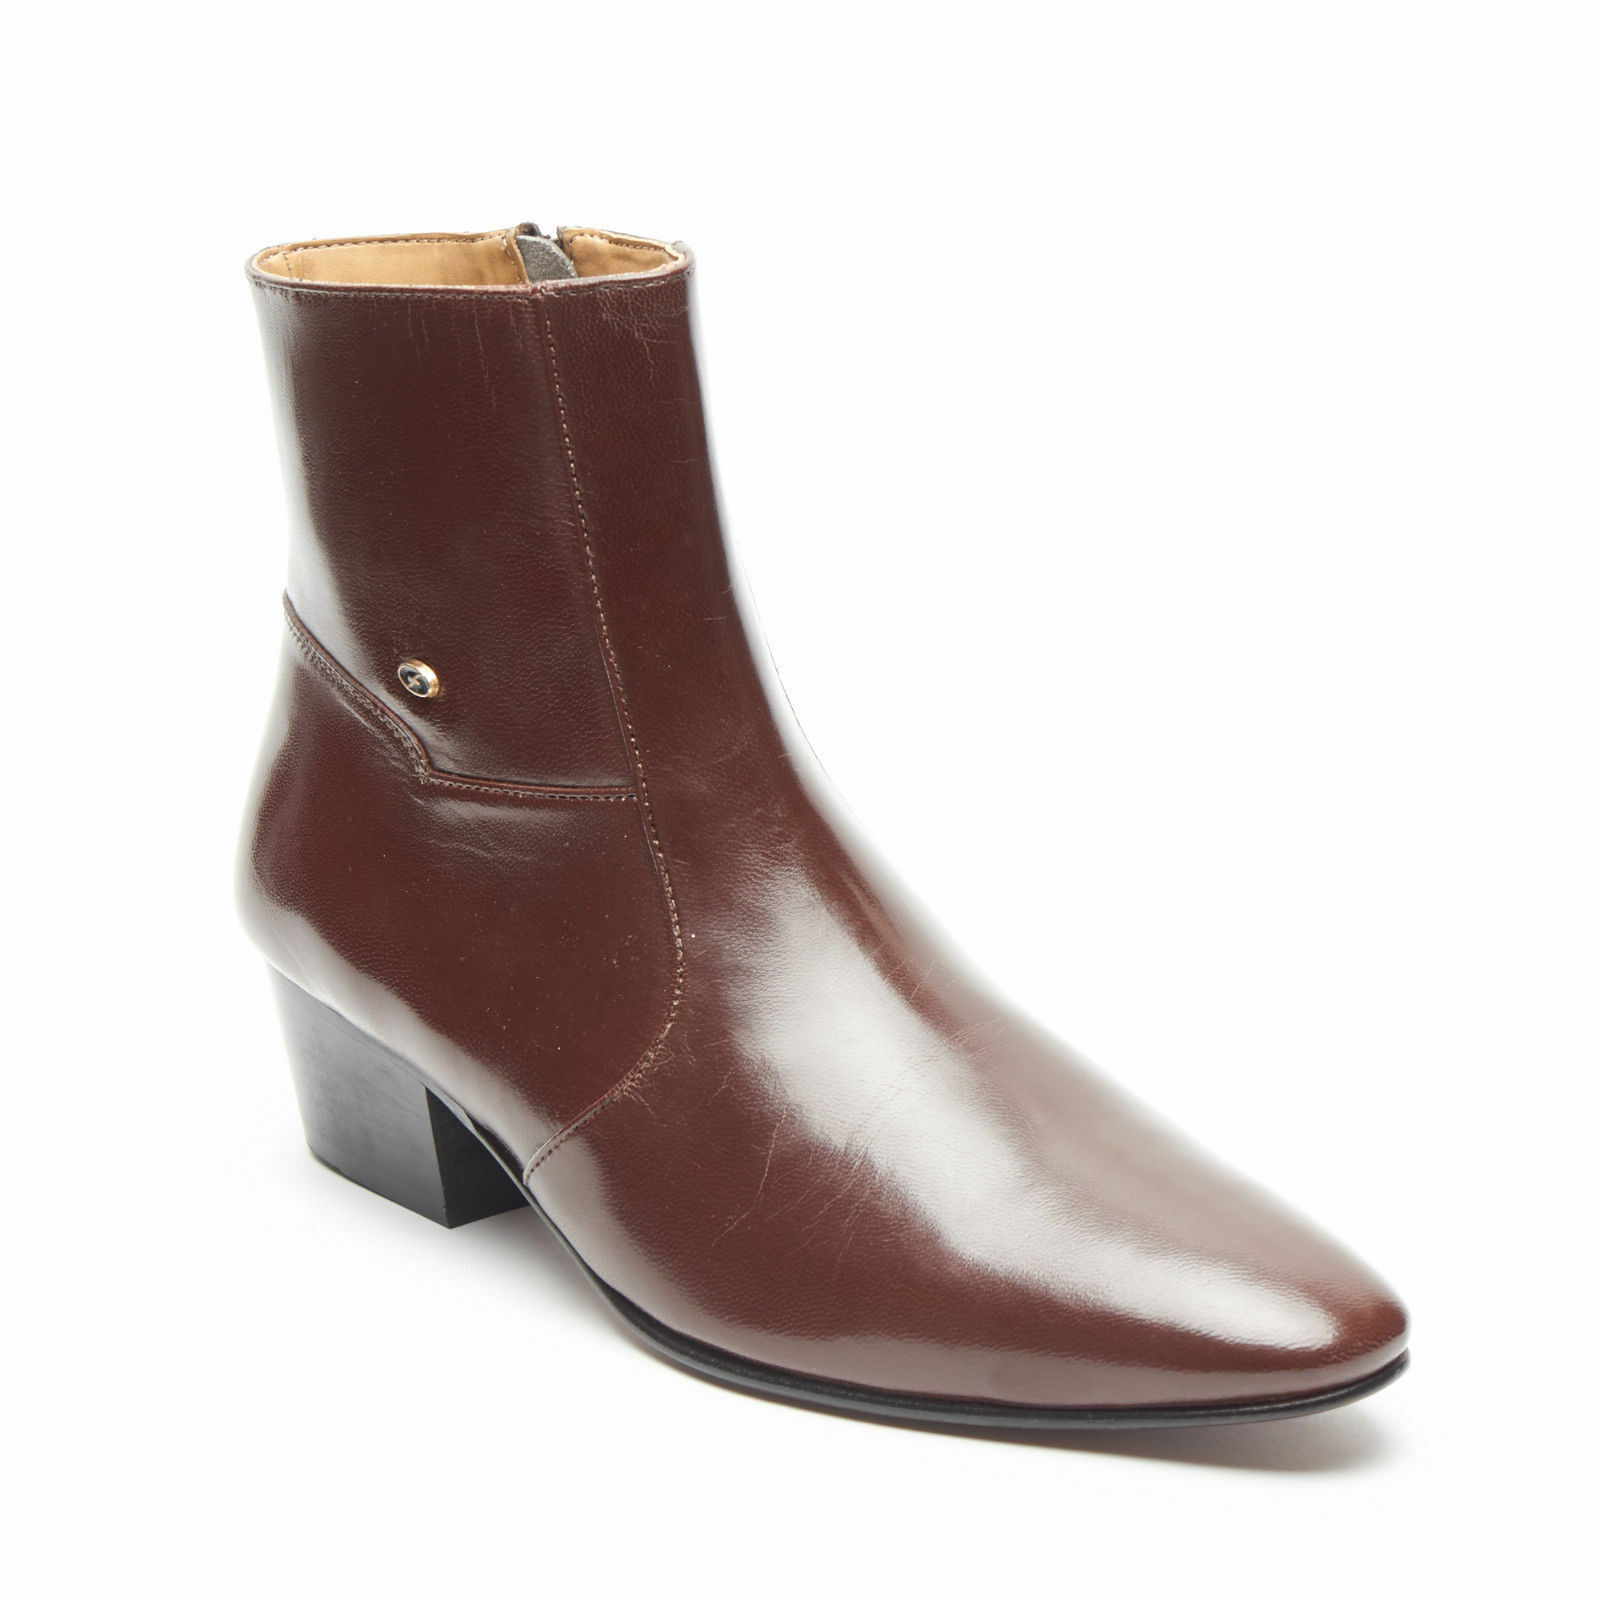 Mens Formal Lucini Leather Brown Cuban Heel Wedding Ankle Boots Zip Up